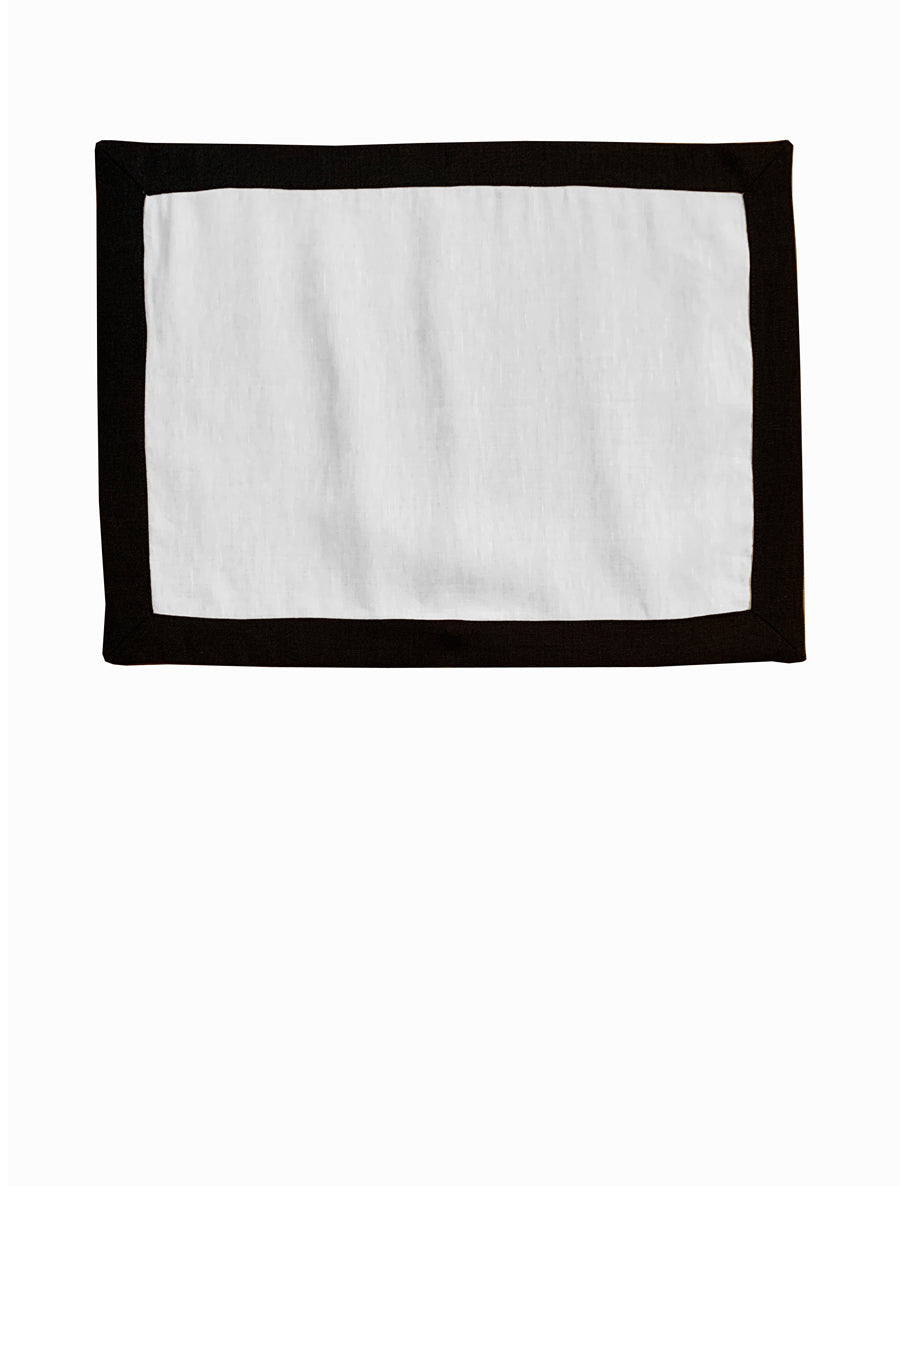 Set of 4 Contrast Border Placemat Black/White